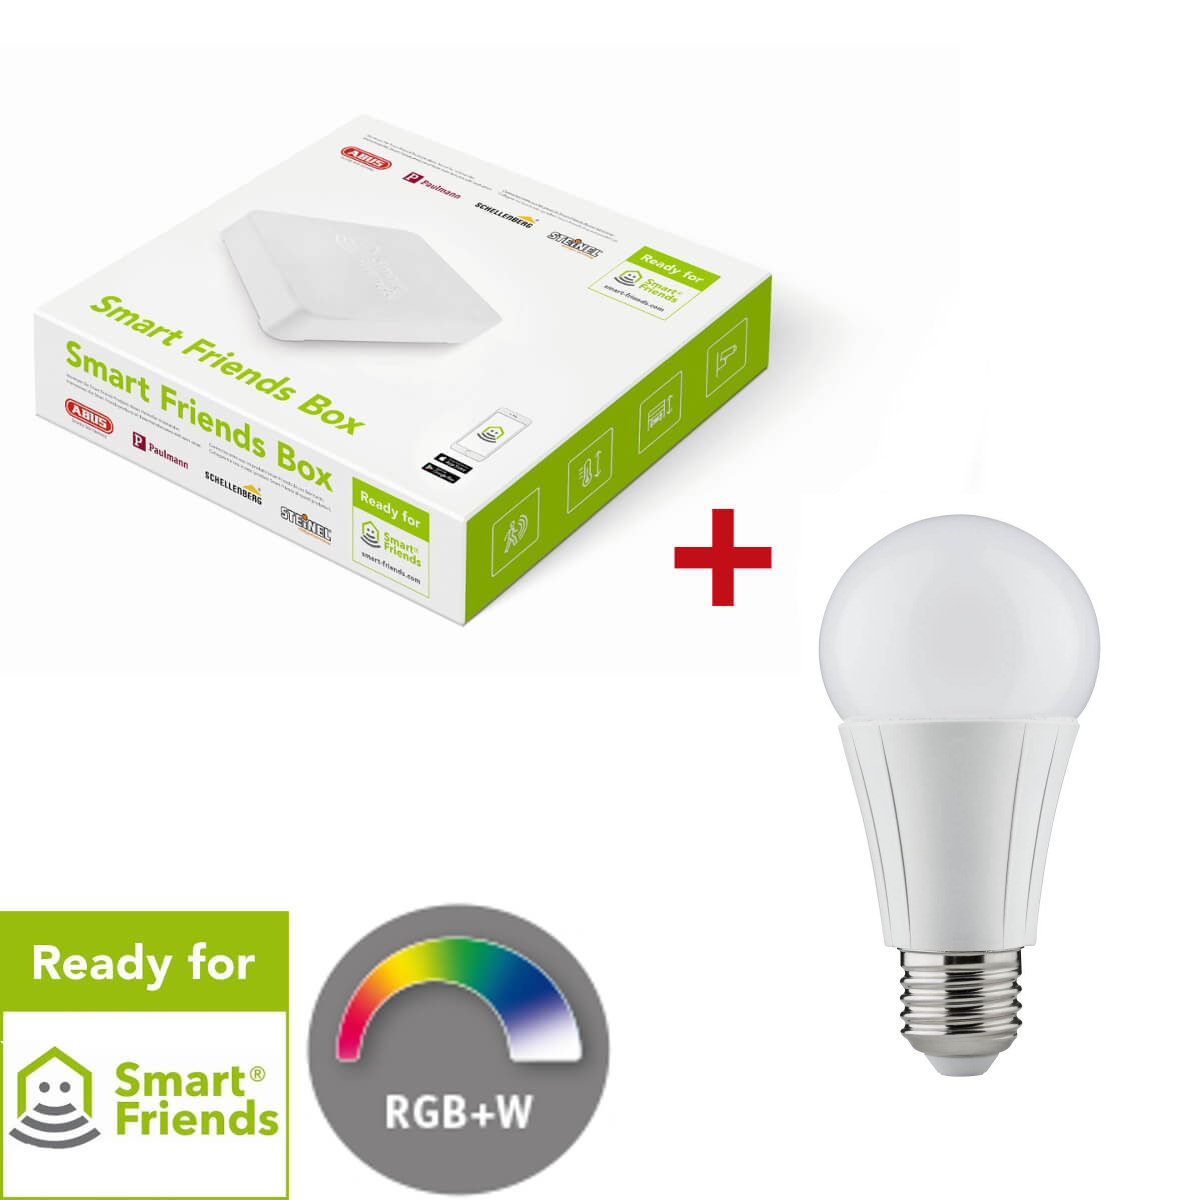 Smart Friends Einsteigerpaket Licht